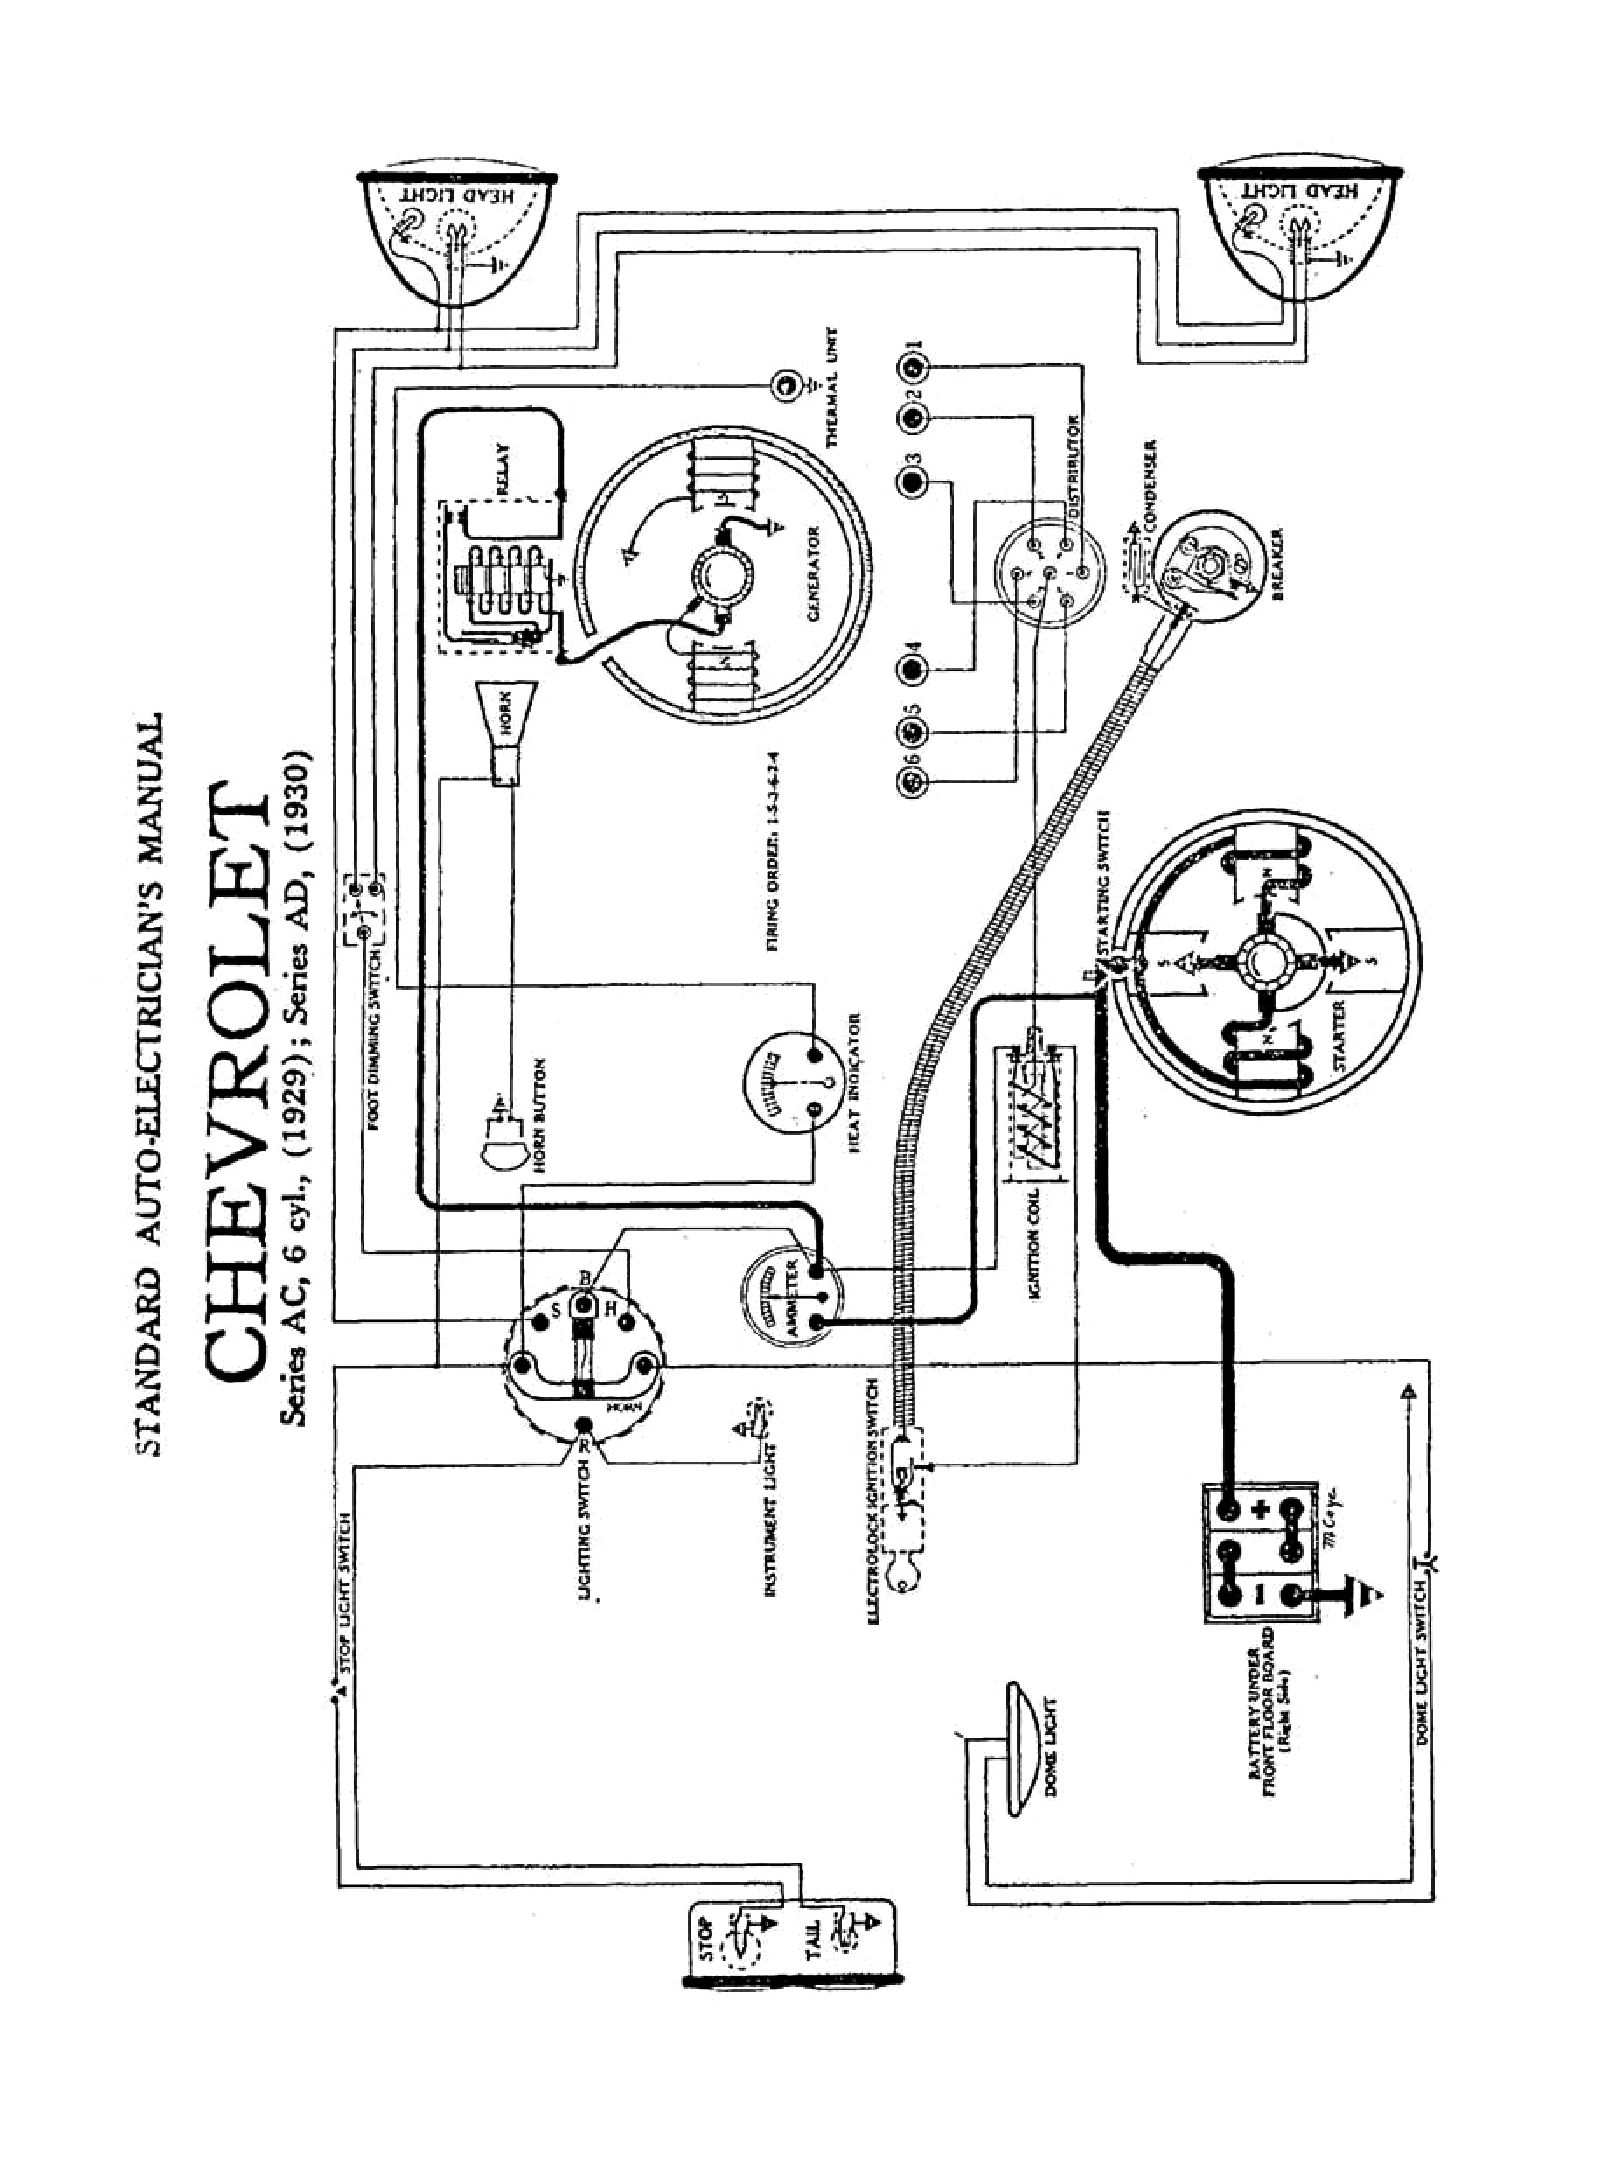 hight resolution of chevy wiring diagrams truck wiring 1948 1948 car wiring 1948 truck wiring 1949 1949 car